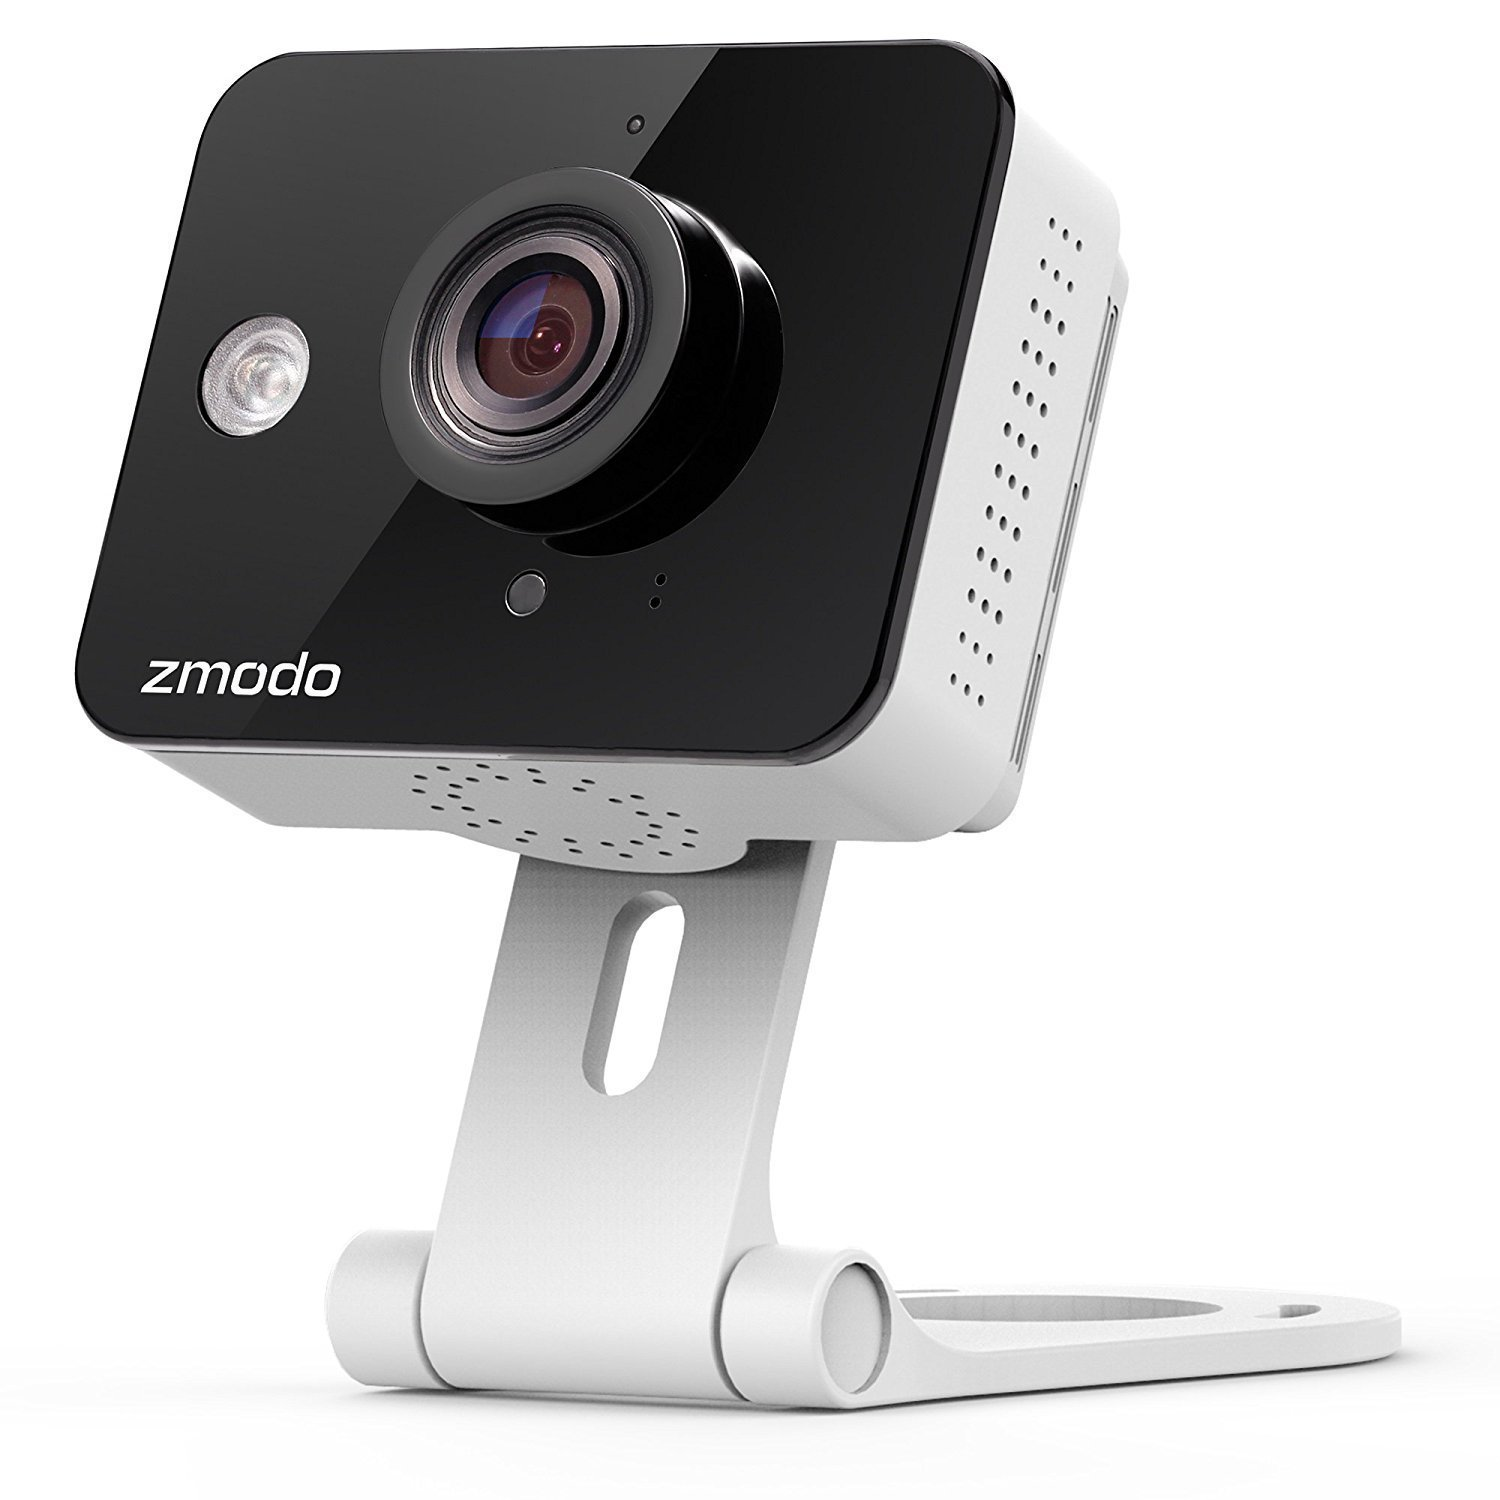 Zmodo True HD Mini WiFi Wireless Wide Angle Indoor Home Video Security Camera Two-Way Audio, Cloud Service Available (Certified Refurbished)